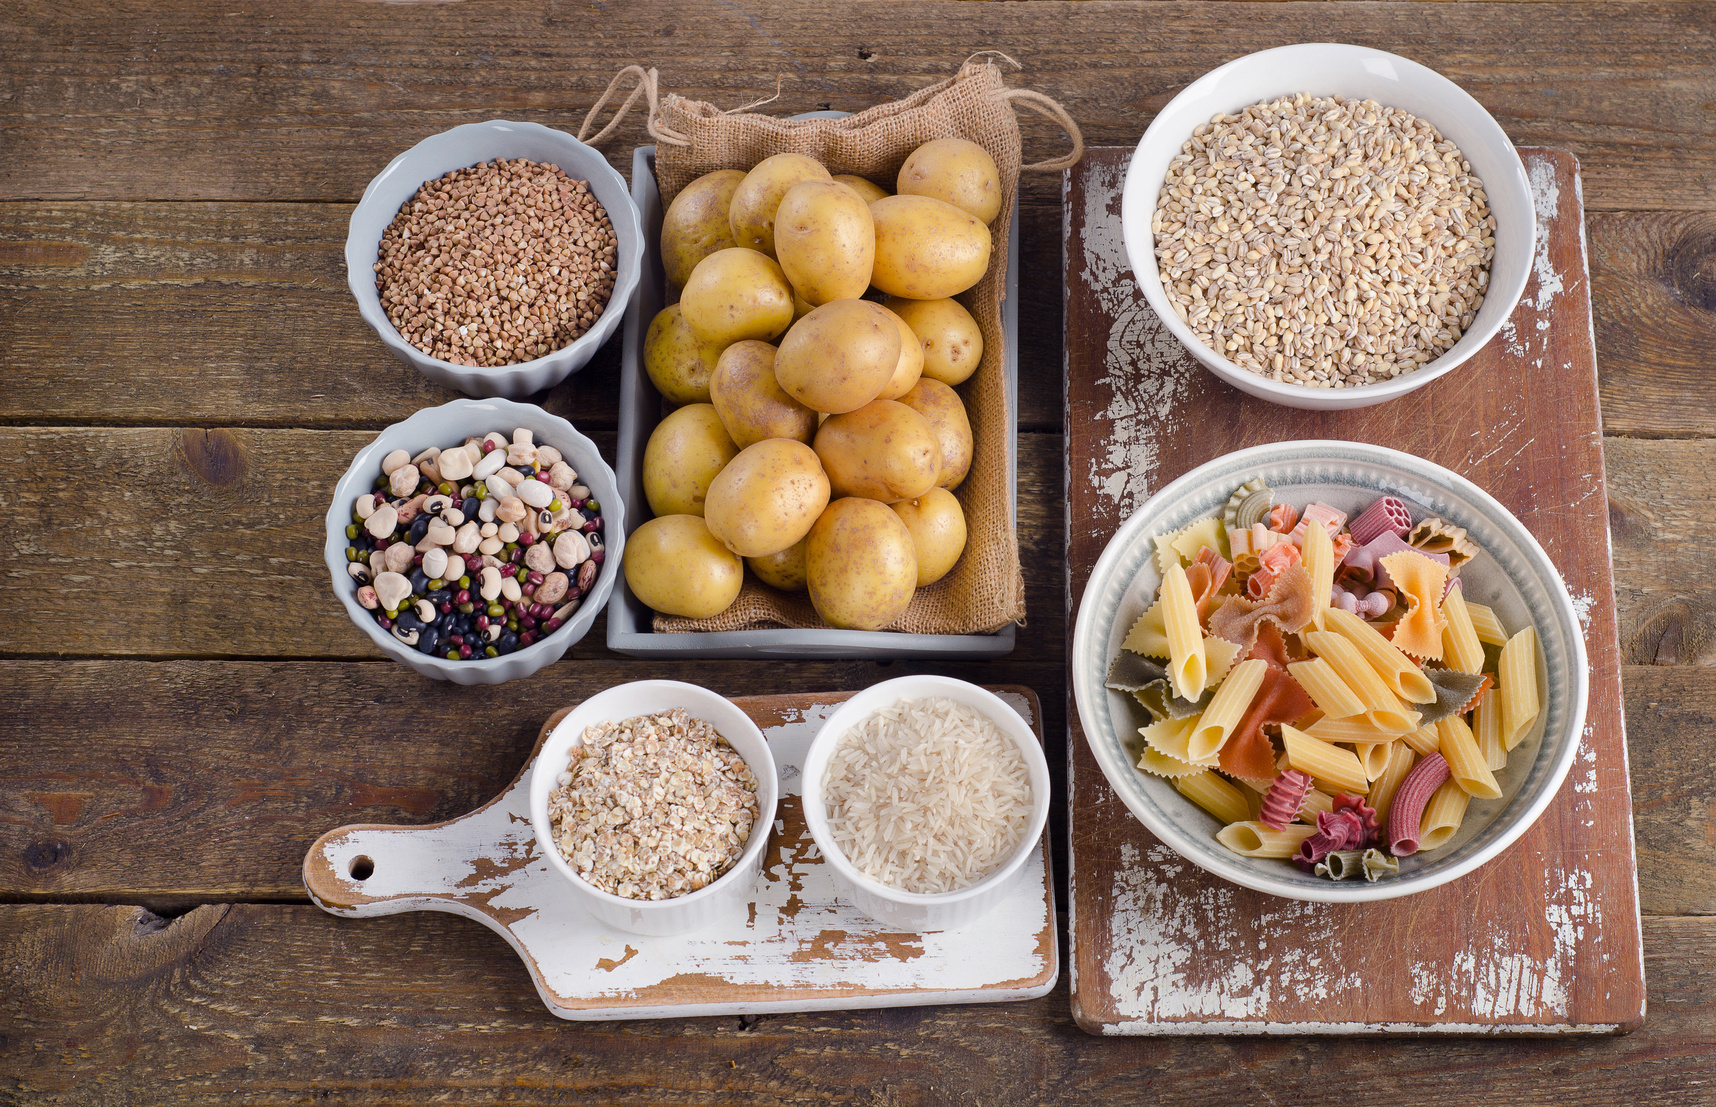 Runners Diet - Your Complete Guide to Carbohydrates ...